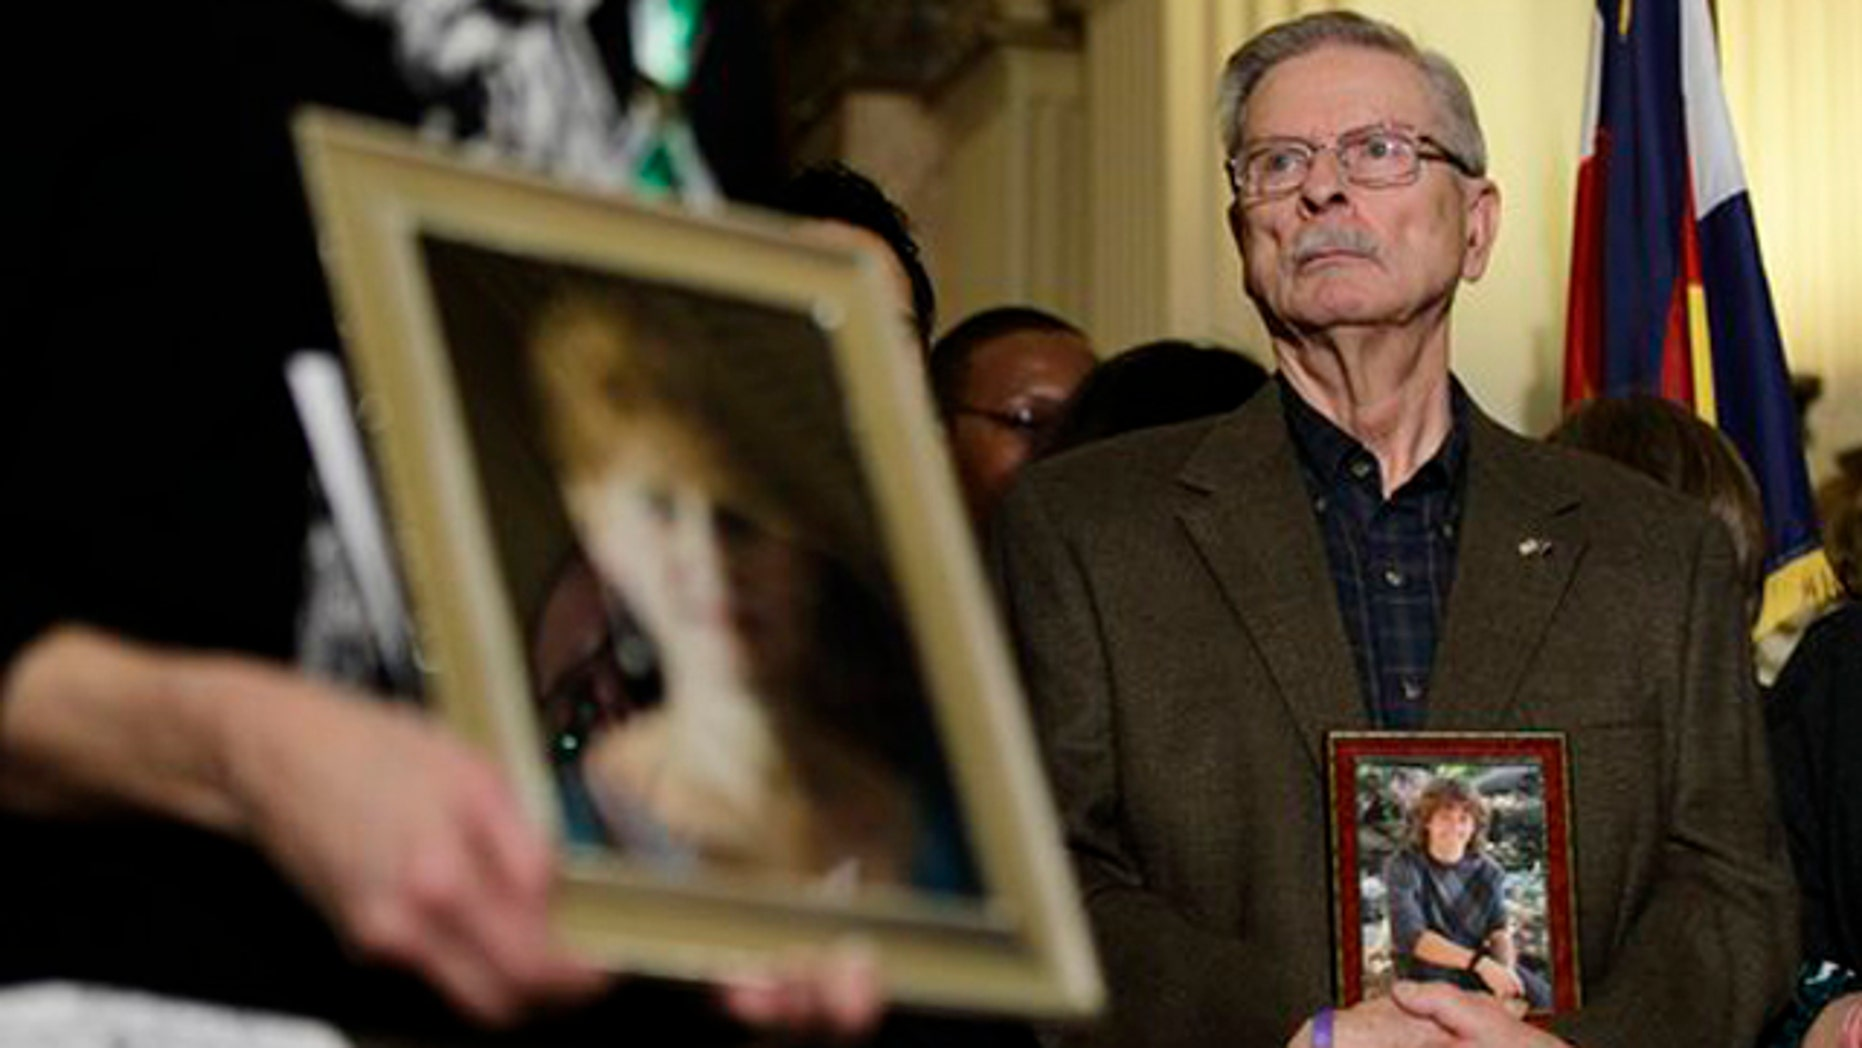 Bill Hoover carries a photo of his grandson AJ Boik, who was killed in the July, 2012 Aurora movie theatre massacre, during a news conference at which Colorado State legislators unveiled  gun control measures, at the State Capitol, in Denver, Tuesday Feb. 5, 2013. Among the proposed measures is a new bill that would hold manufacturers, sellers, and owners of assault weapons liable and responsible for damages caused by shootings with those weapons. (AP Photo/Brennan Linsley)